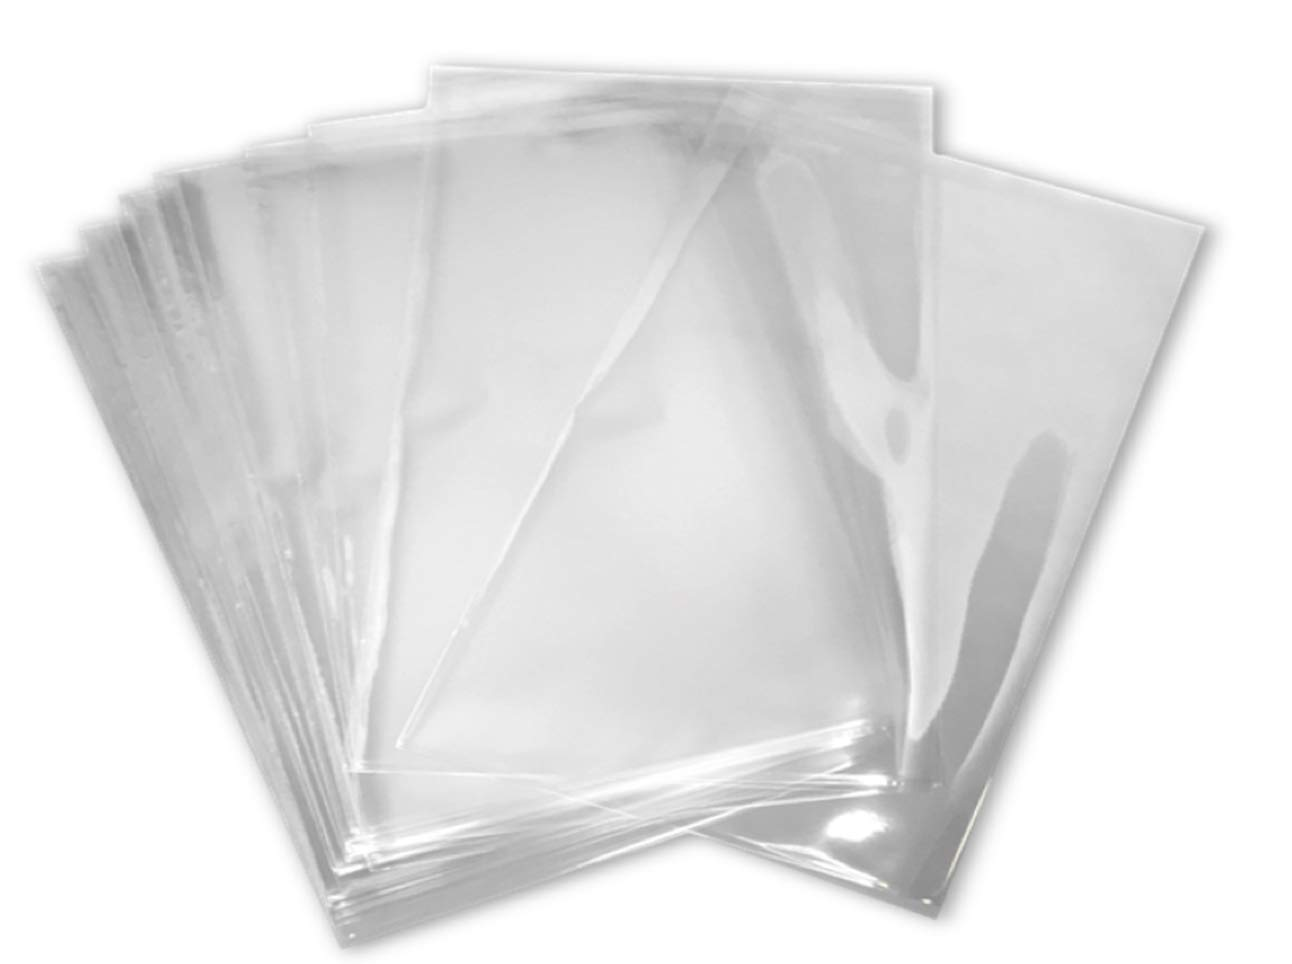 4x6 inch Odorless, Clear, 100 Guage, PVC Heat Shrink Wrap Bags for Gifts, Packaging, Homemade DIY Projects, Bath Bombs, Soaps, and Other Merchandise (500 Pack) | MagicWater Supply